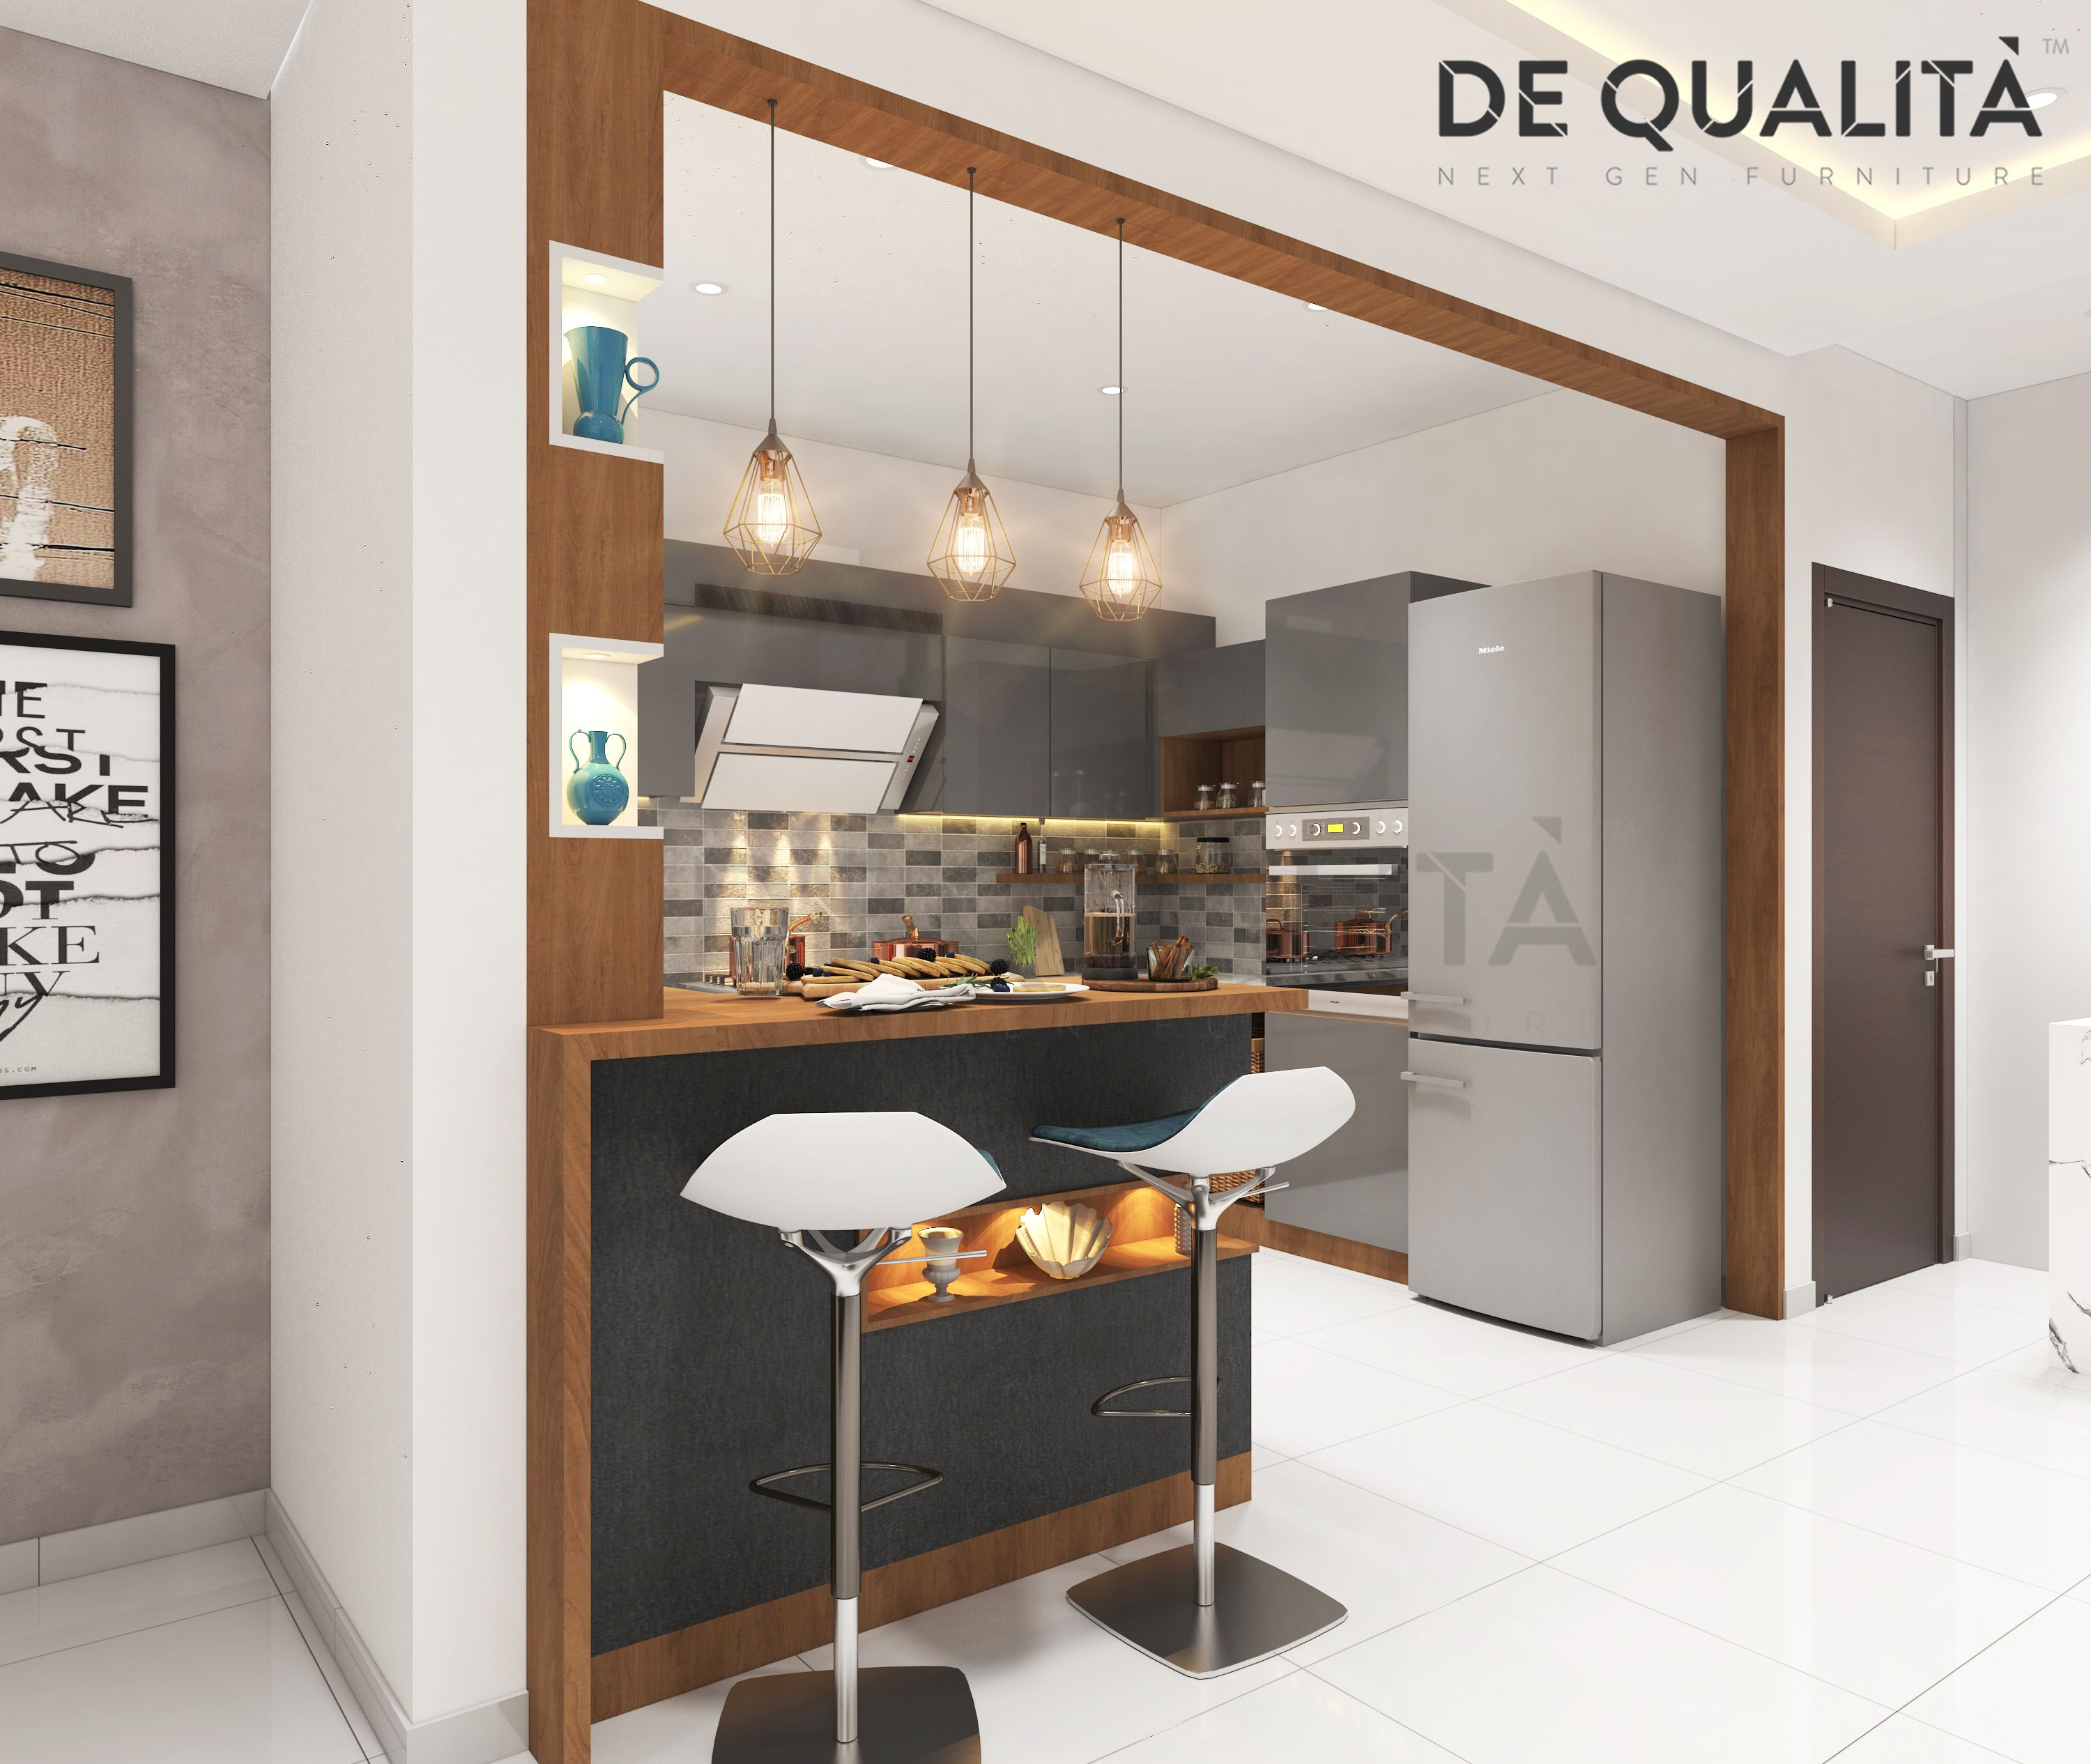 Home Design Ideas Bangalore: A Beautiful Breakfast Counter Fits Well In Any Kind Of